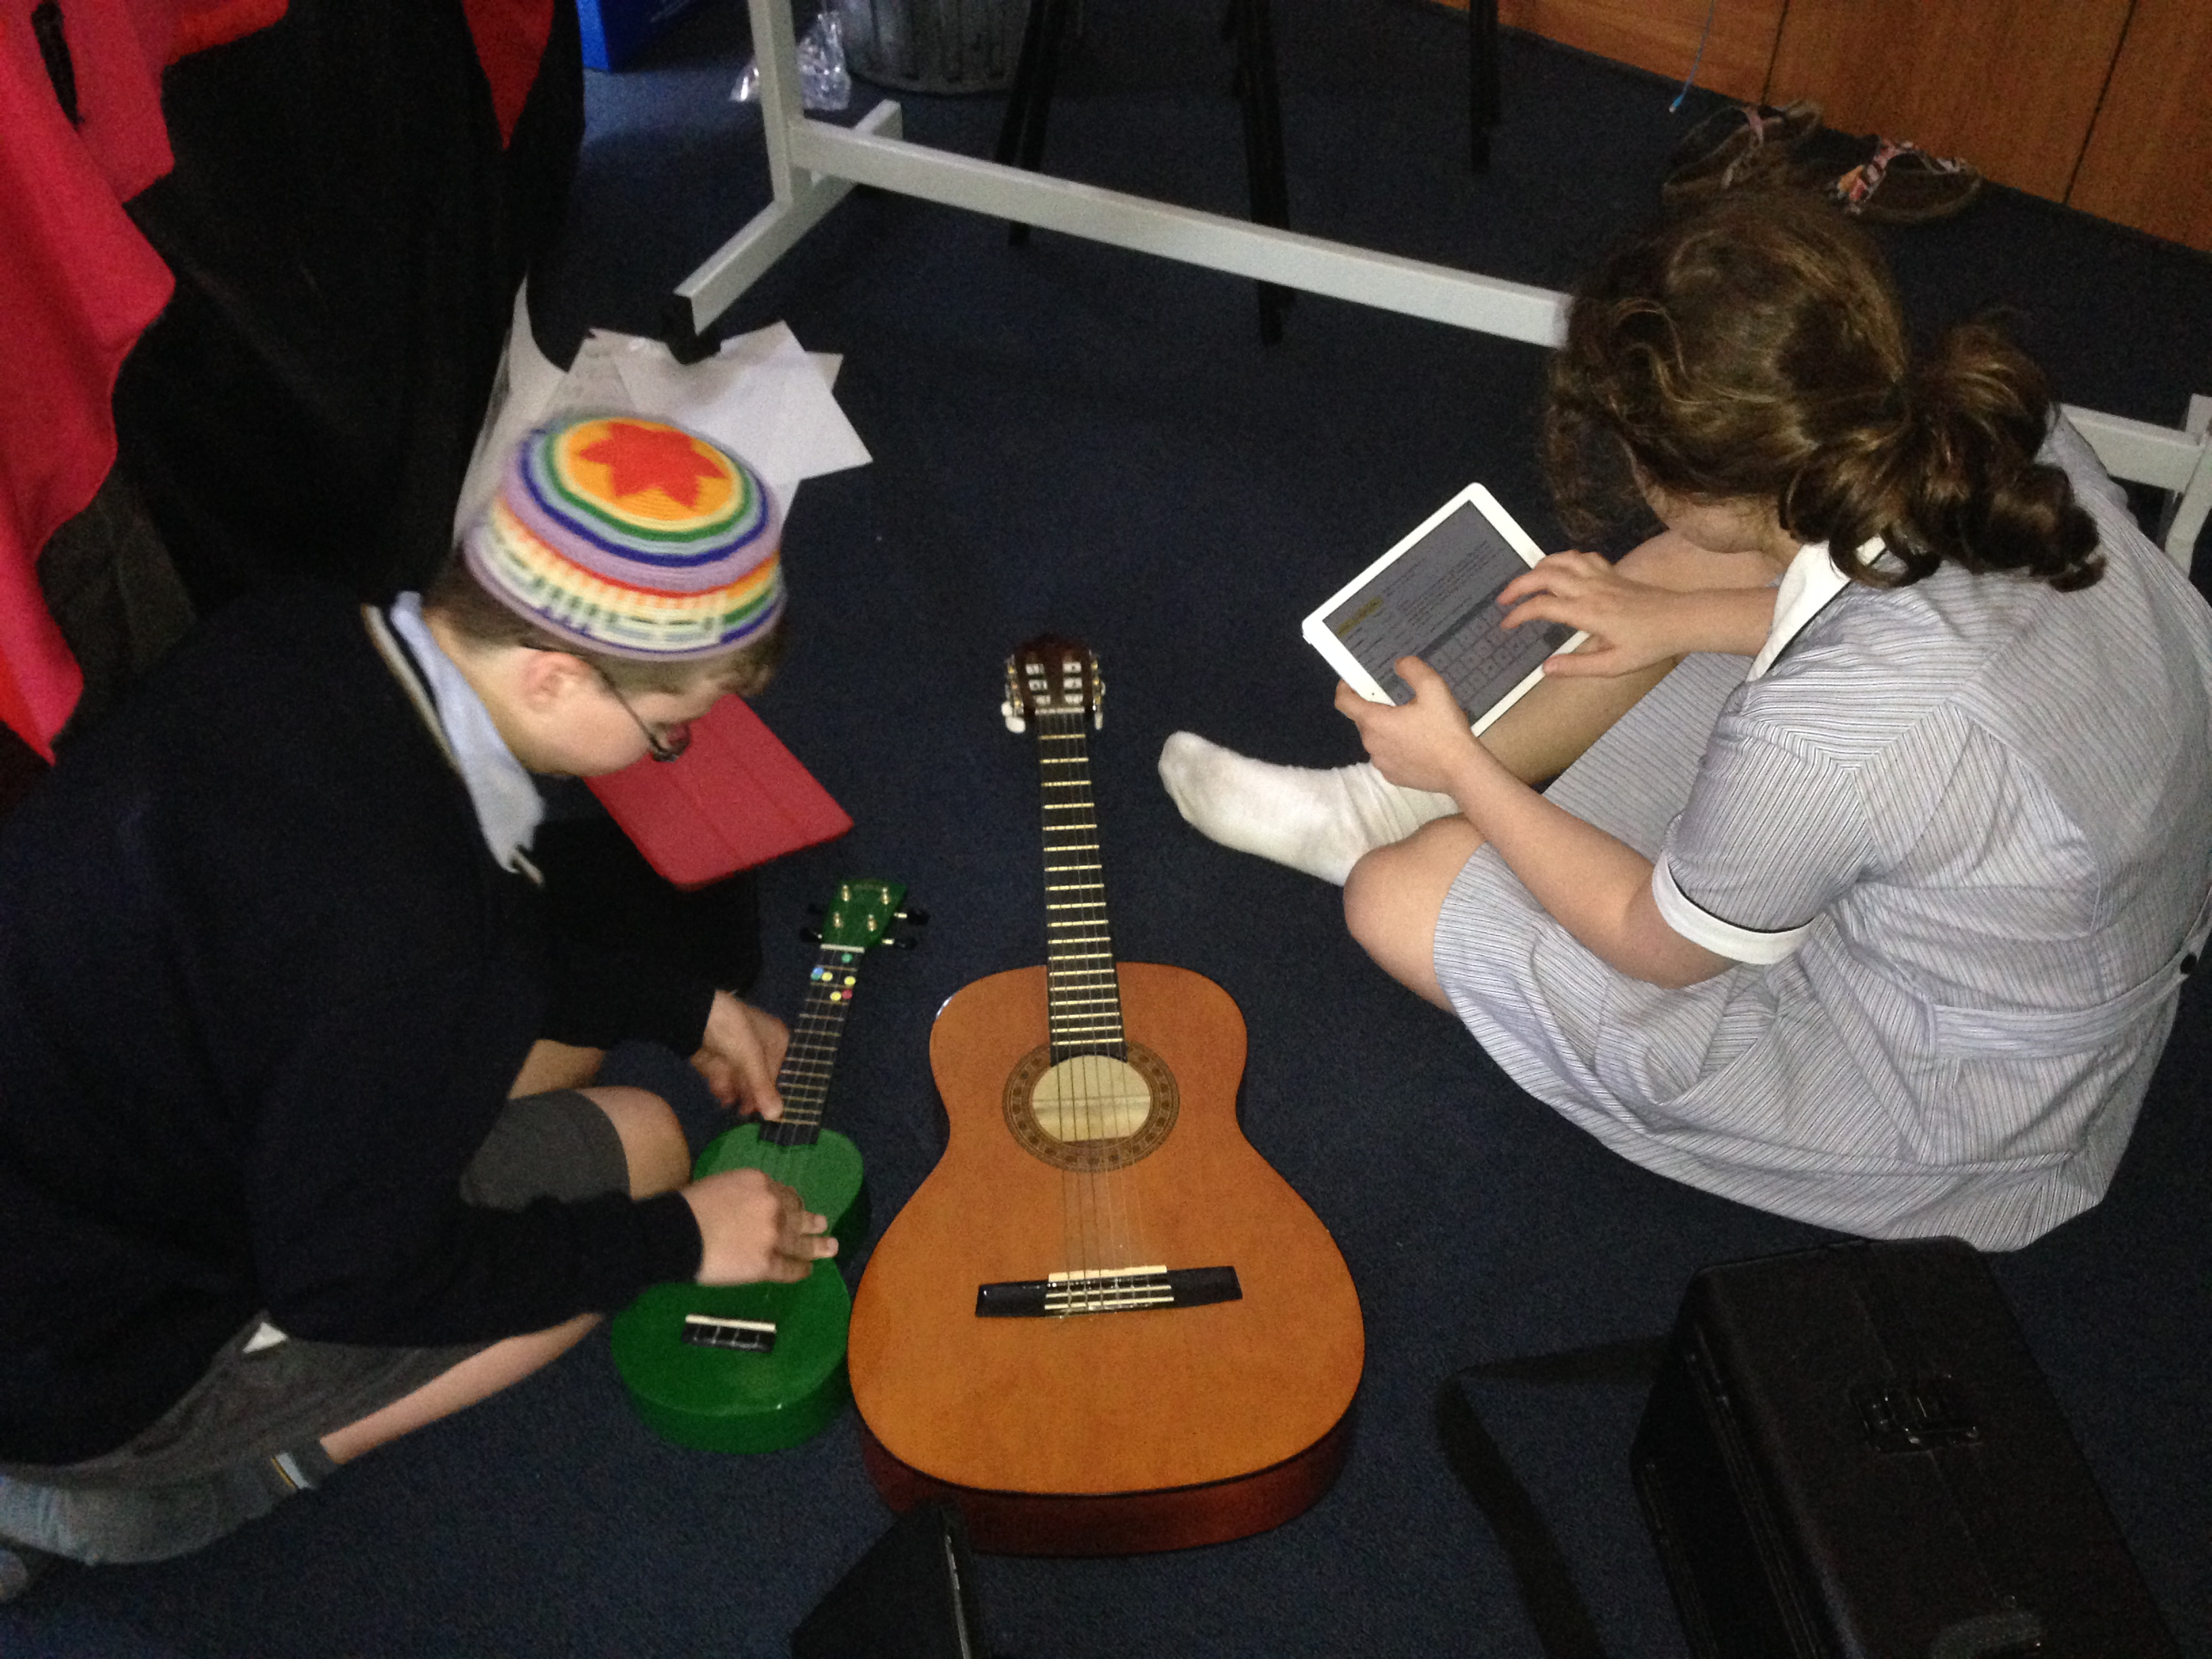 Comparing the sounds made by different instruments